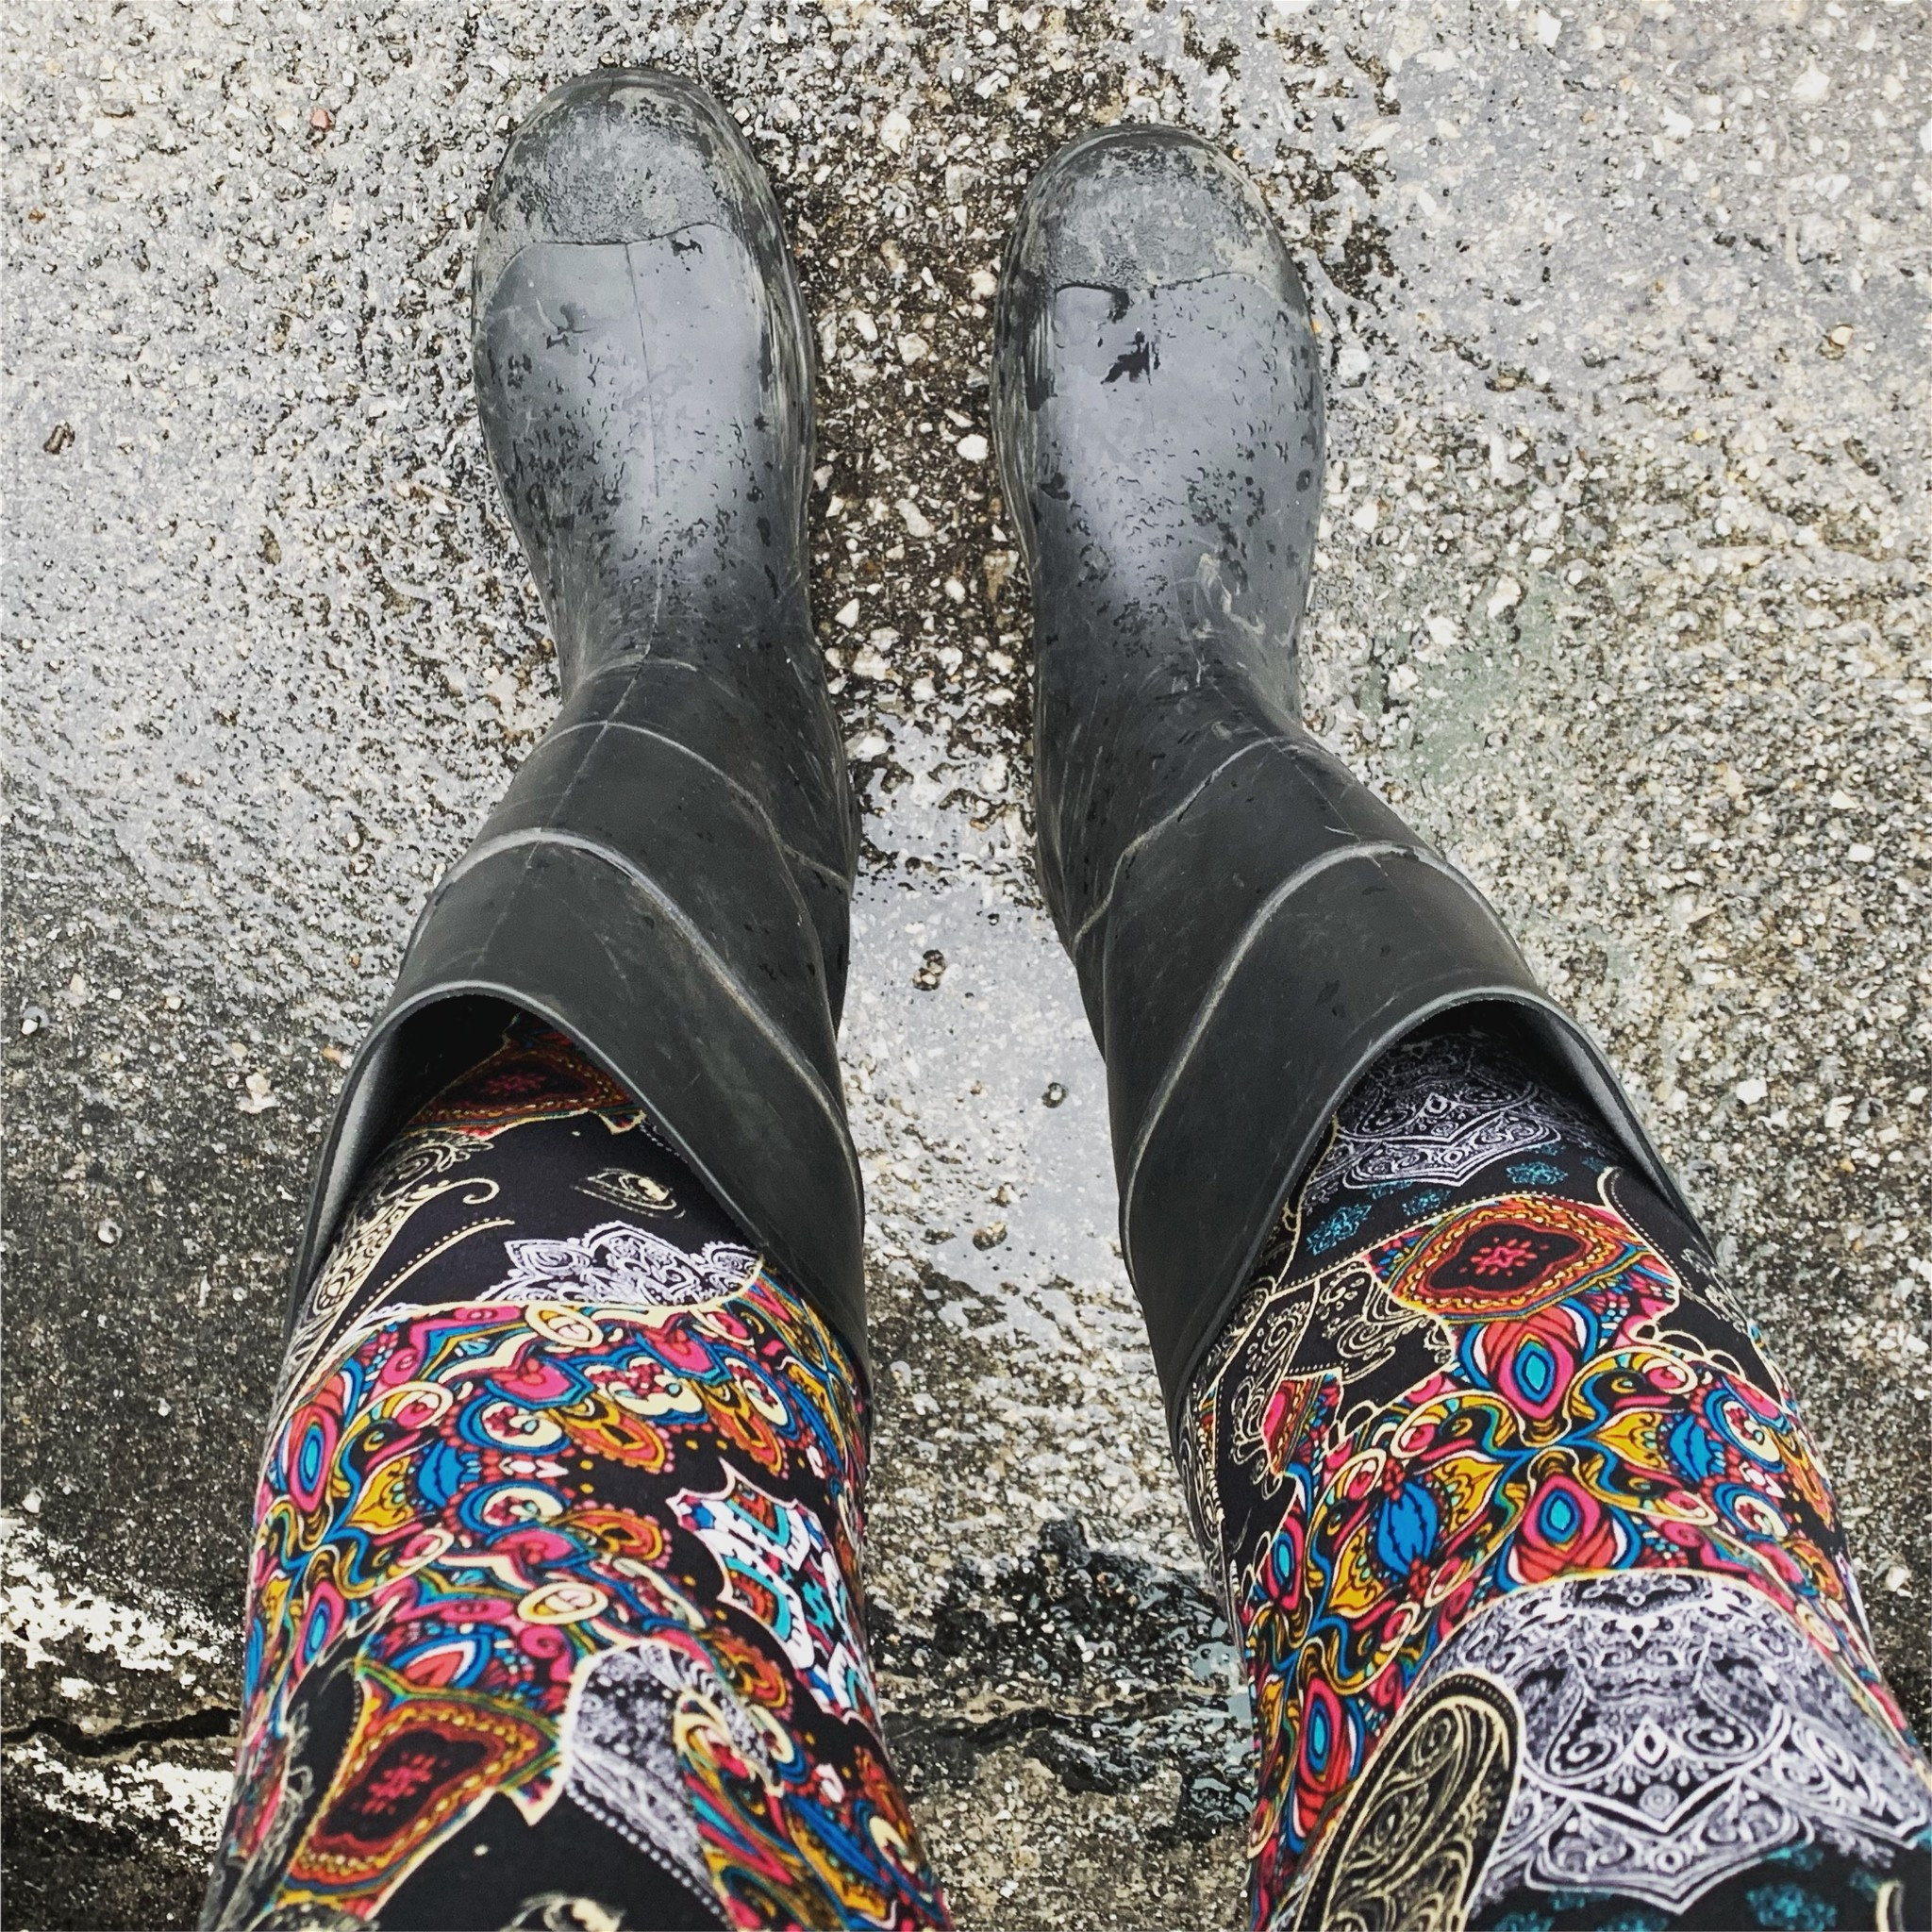 Elephant Leggings + Wellies